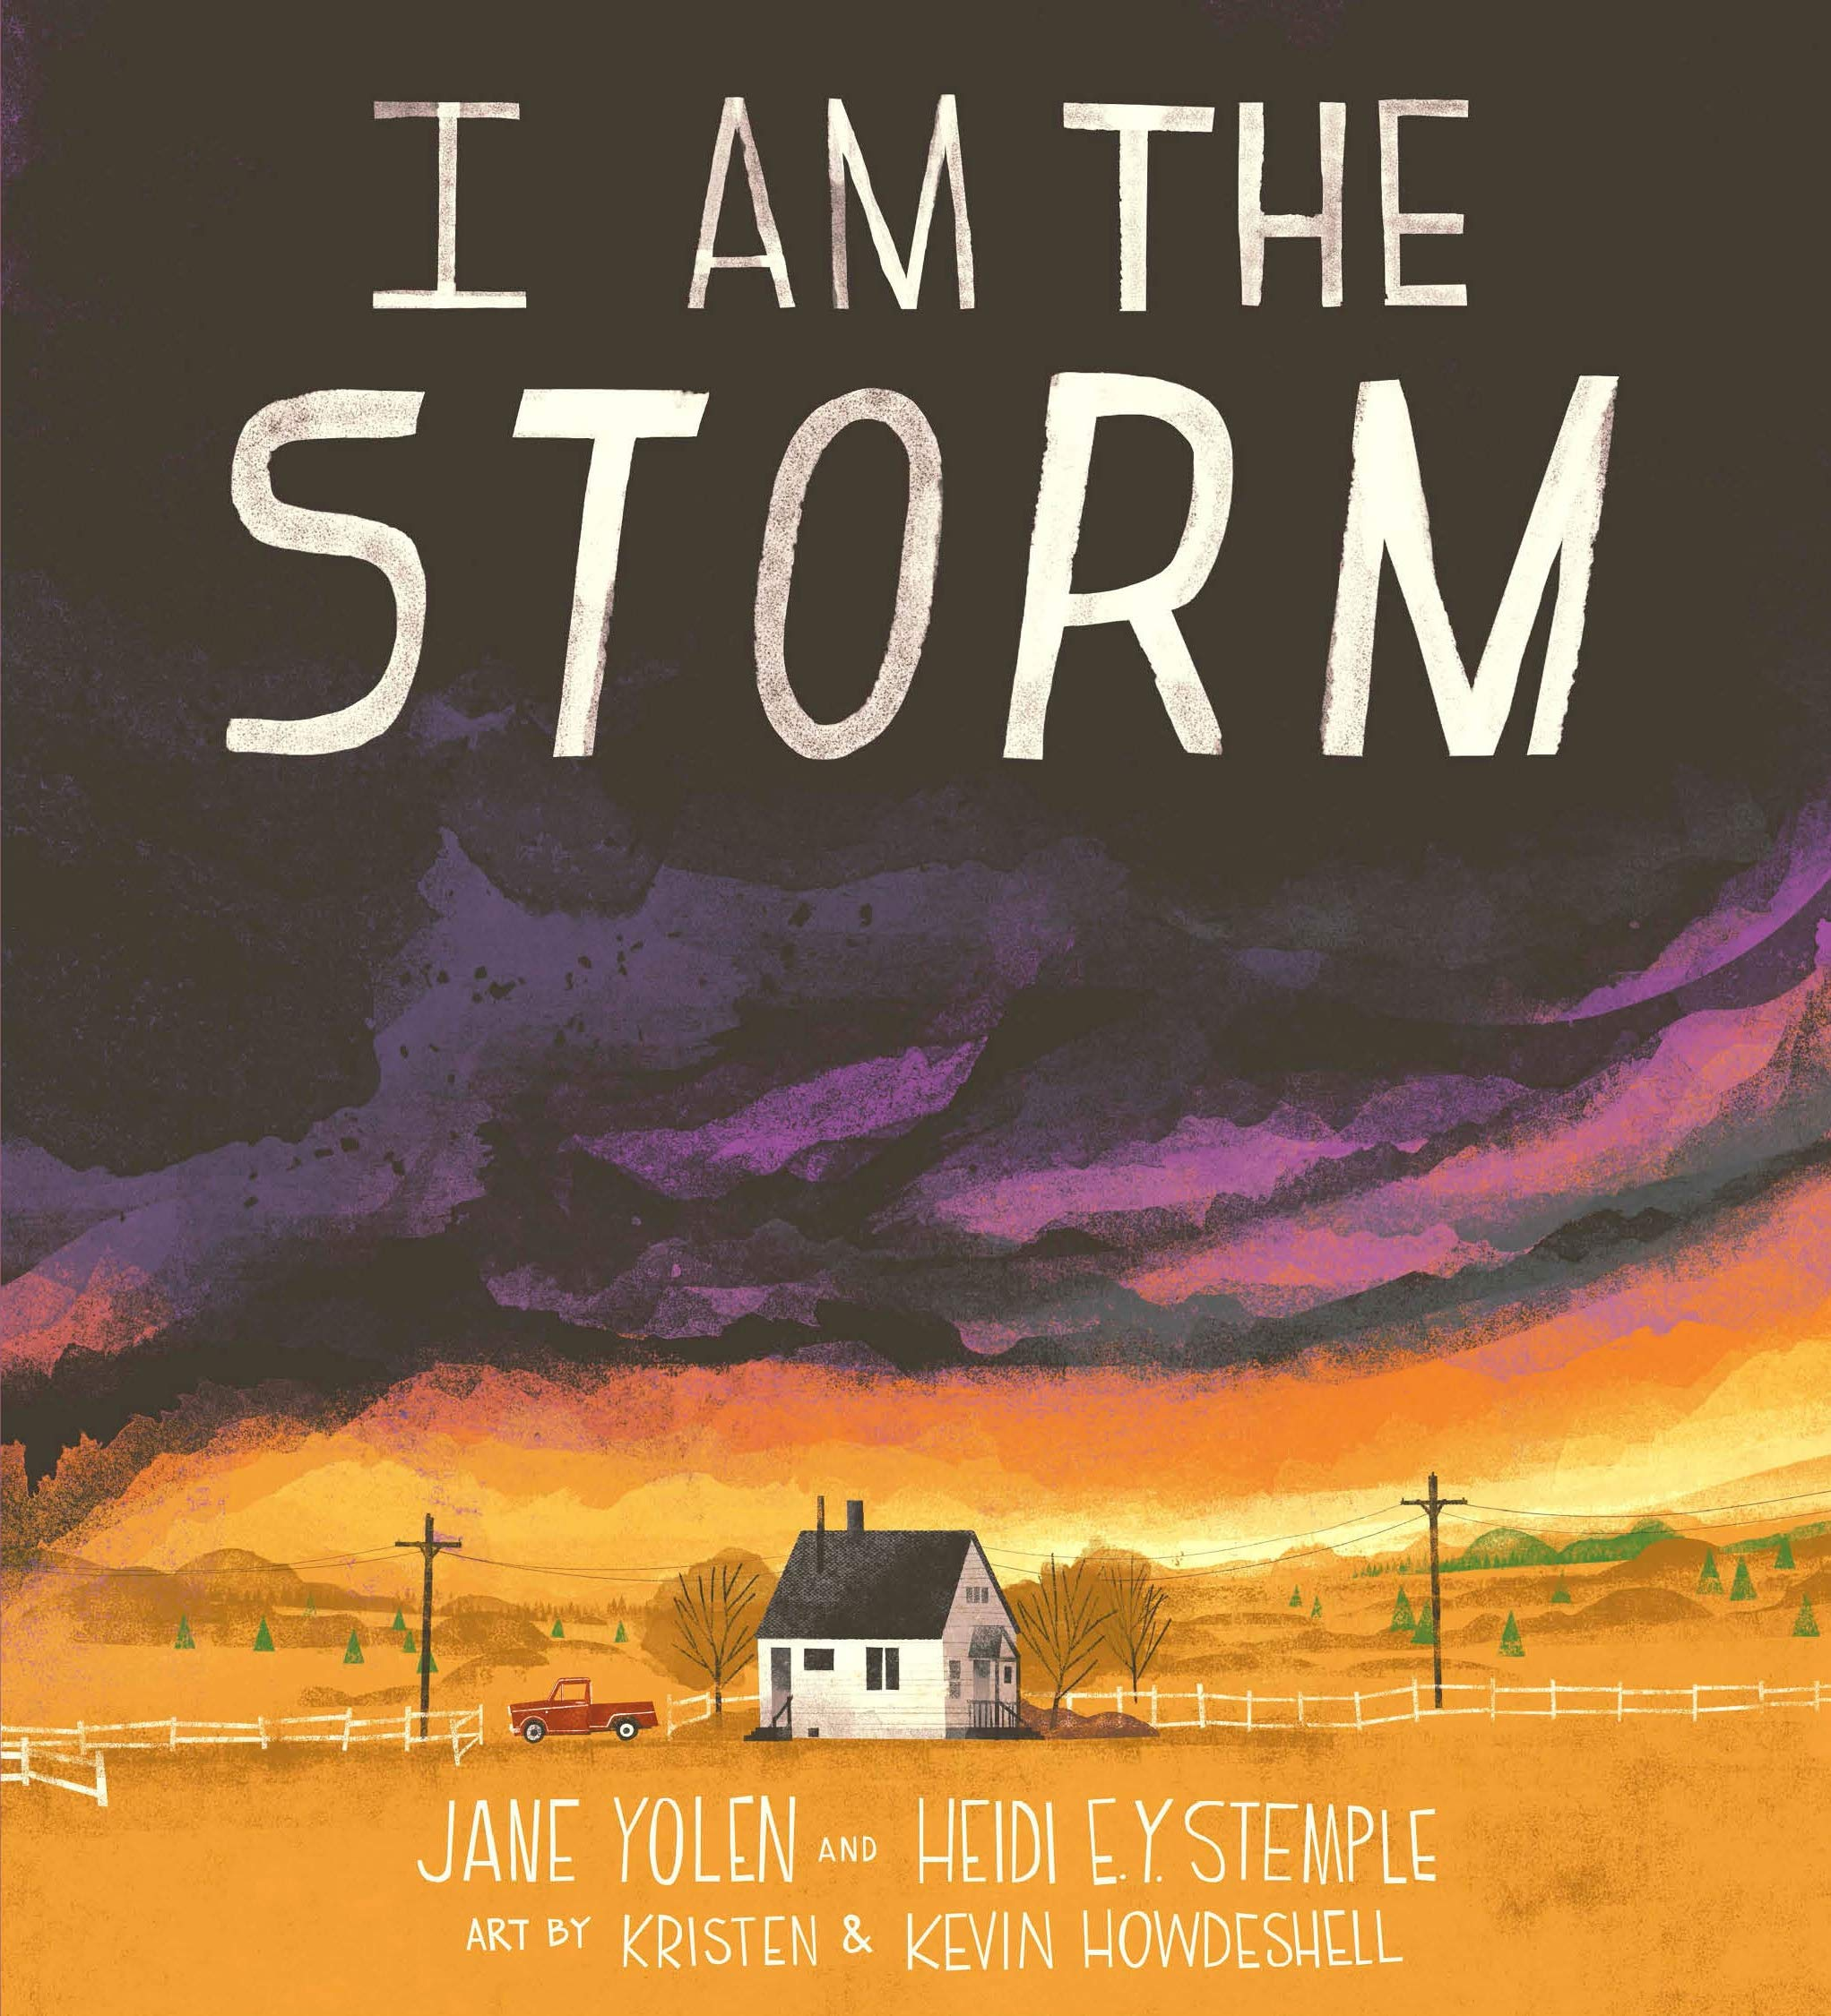 I Am the Storm: Yolen, Jane, Stemple, Heidi E. Y., Howdeshell, Kristen,  Howdeshell, Kevin: 9780593222751: Amazon.com: Books